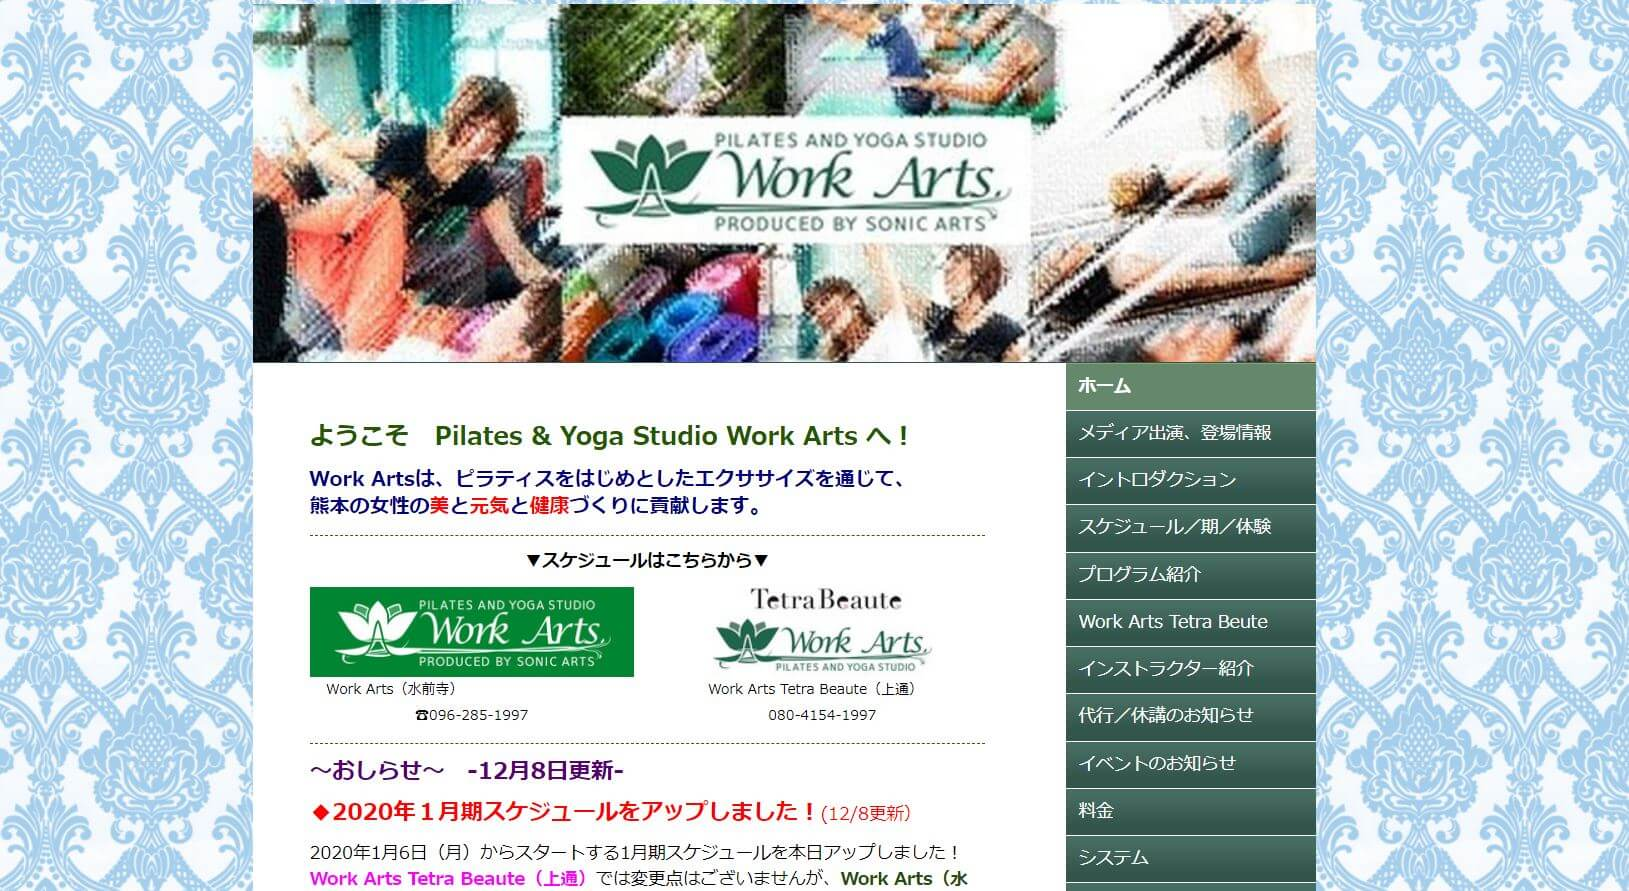 Pilates&Yoga Studio Work Arts